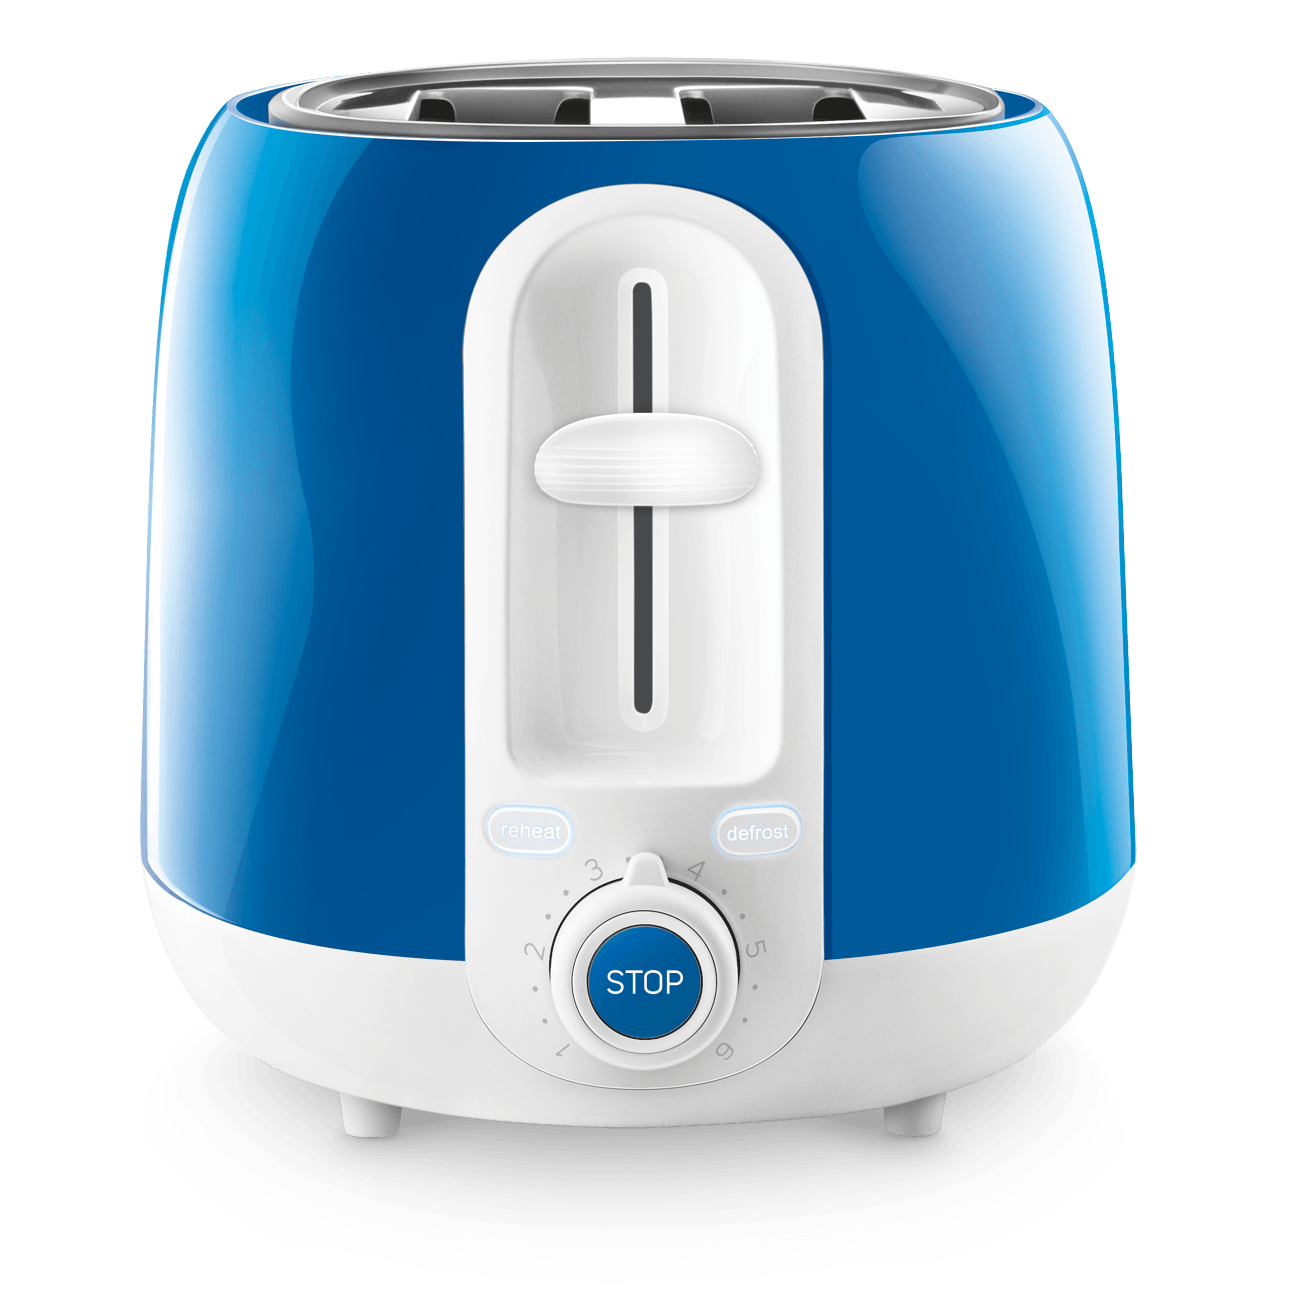 graphic freeuse download Sts bl sencor let. Toaster clipart toster